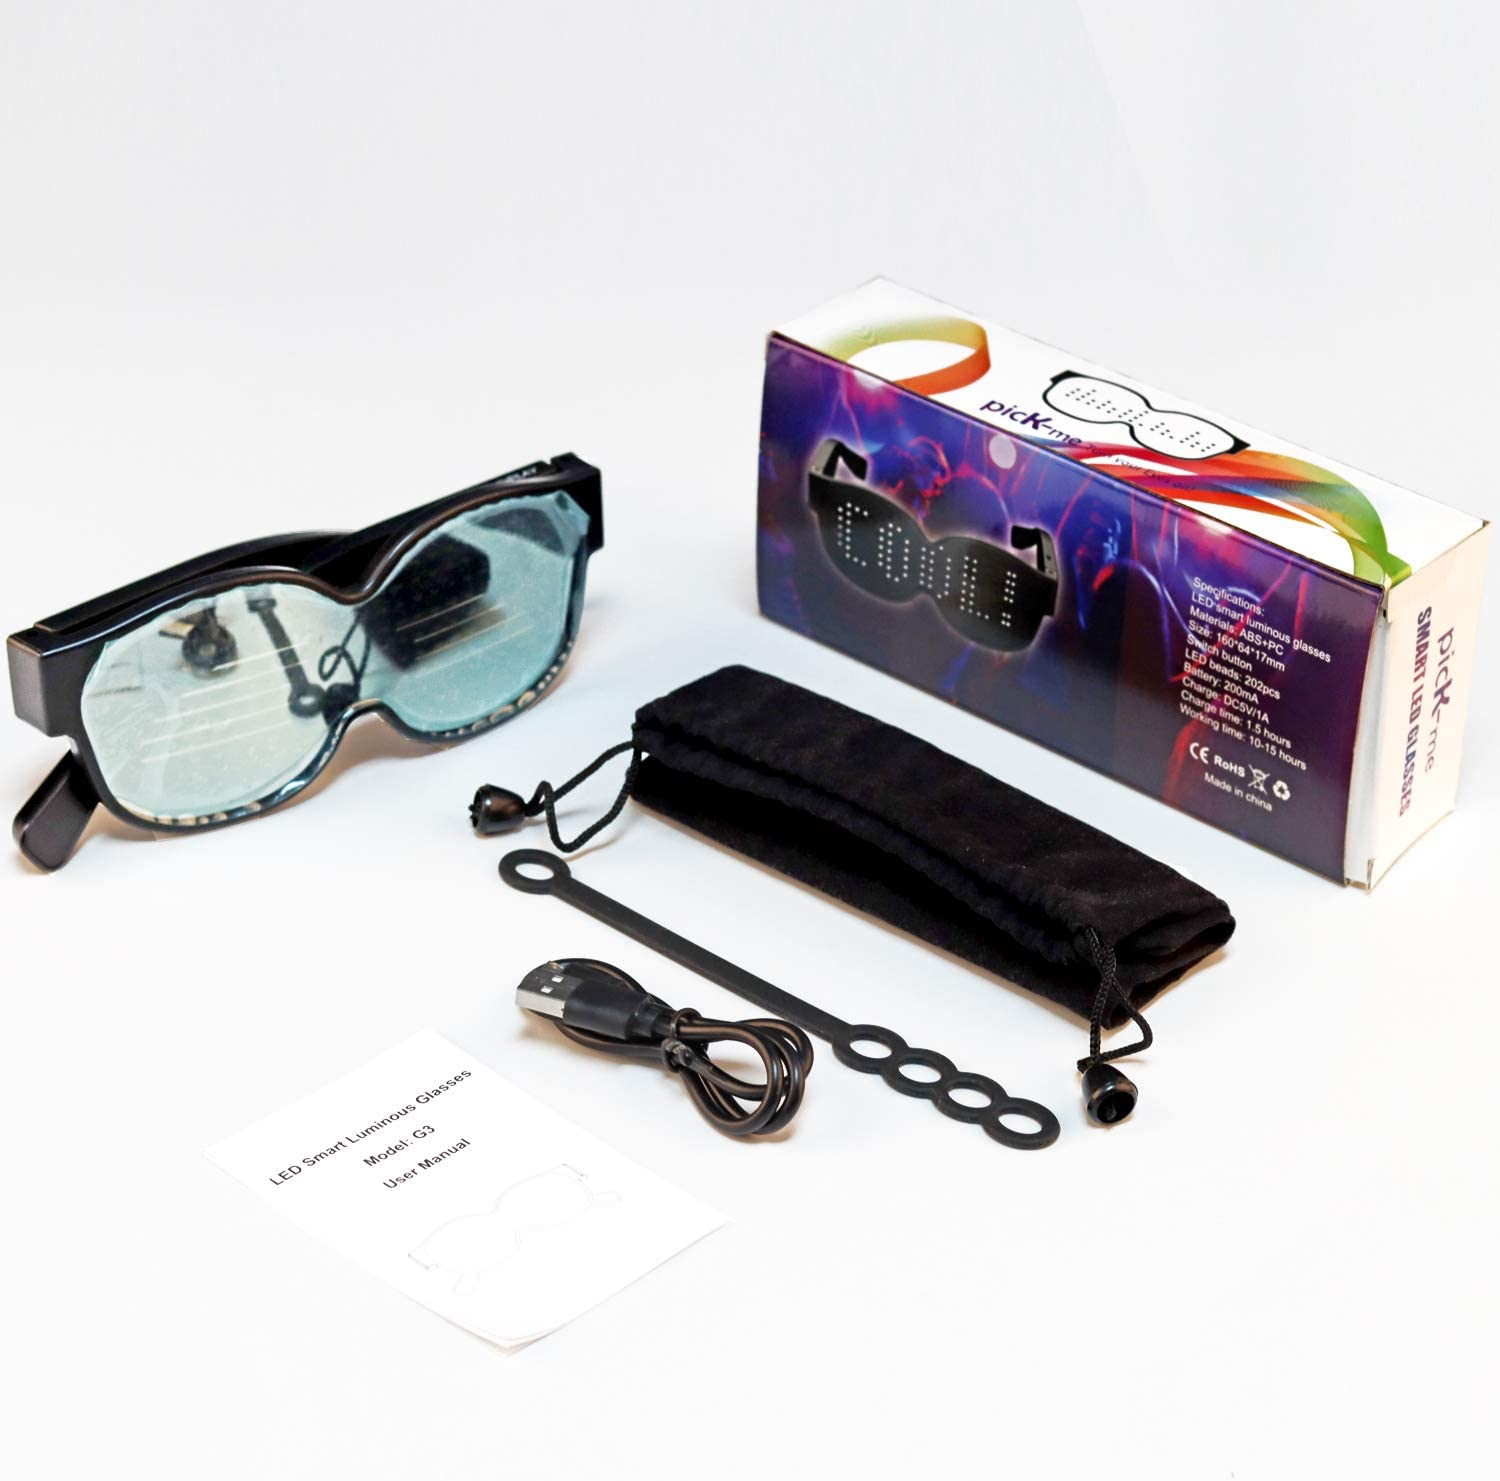 Party USB Rechargeable LED Light Up Eyeglasses Flashing for Raves Work for 10 Hours Concert 8 Dynamic Patterns Switching picK-me LED Party Glasses Nightclub Christmas